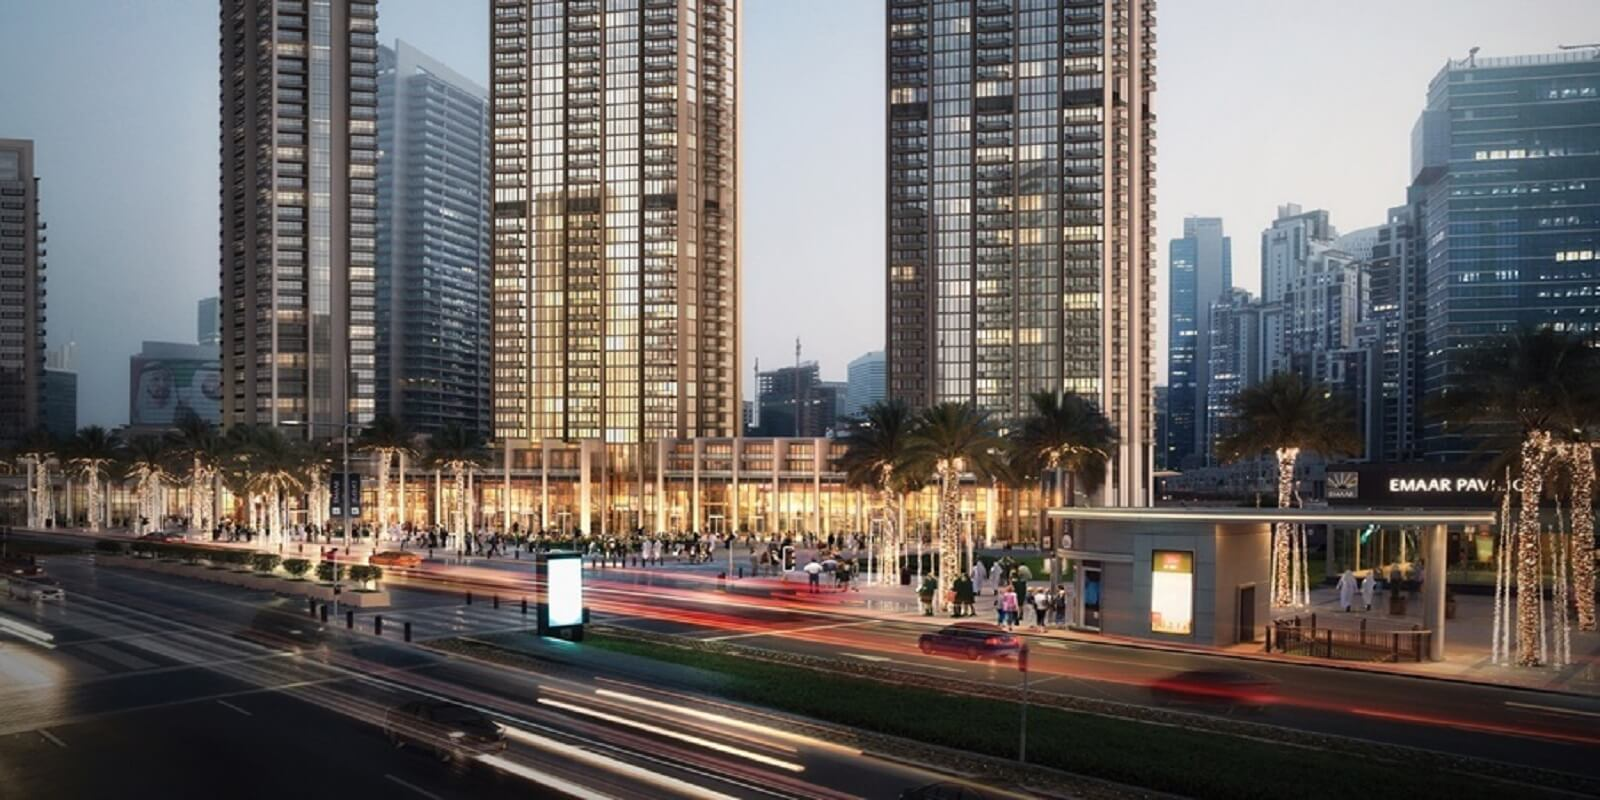 emaar blvd heights project large image2